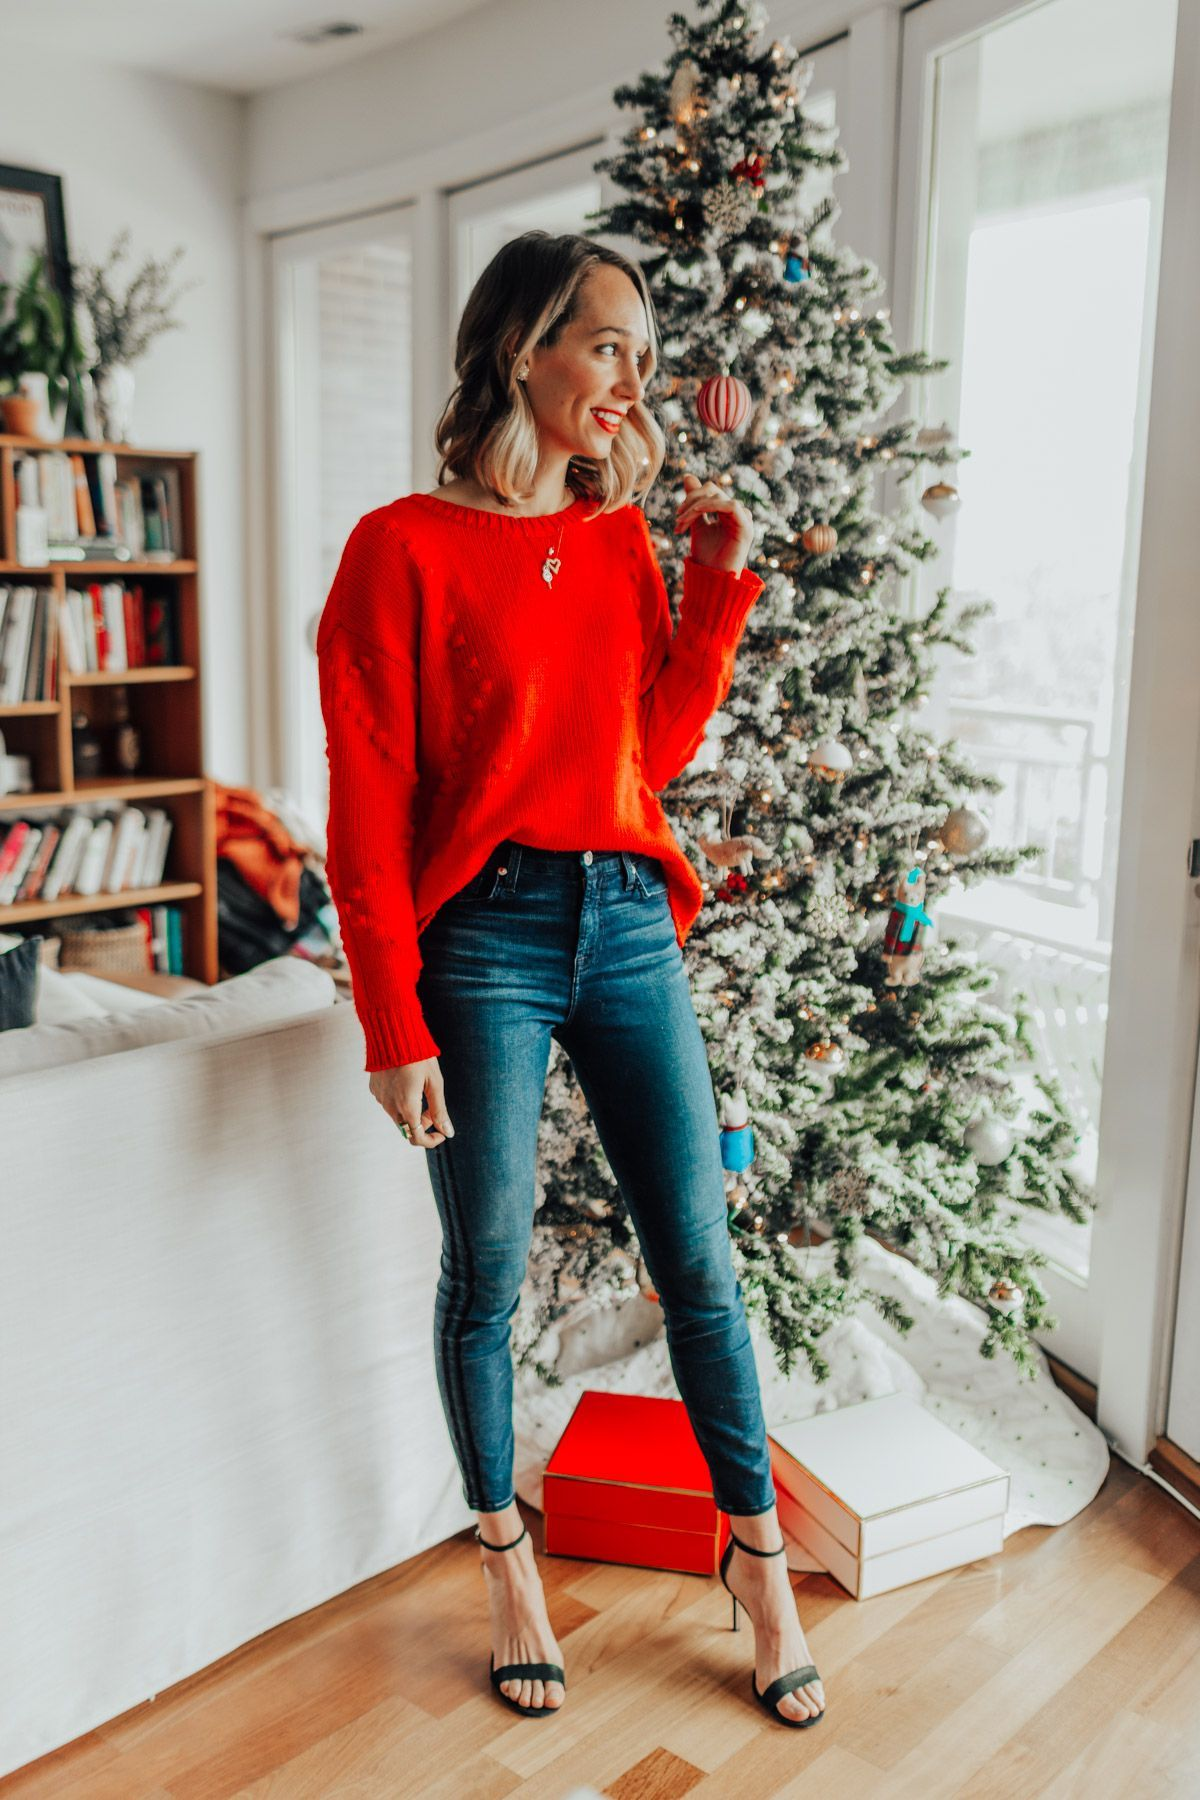 2020 Christmas Outfits Cristmas Clothes   2 Festive Ways to Dress for the Holidays | The